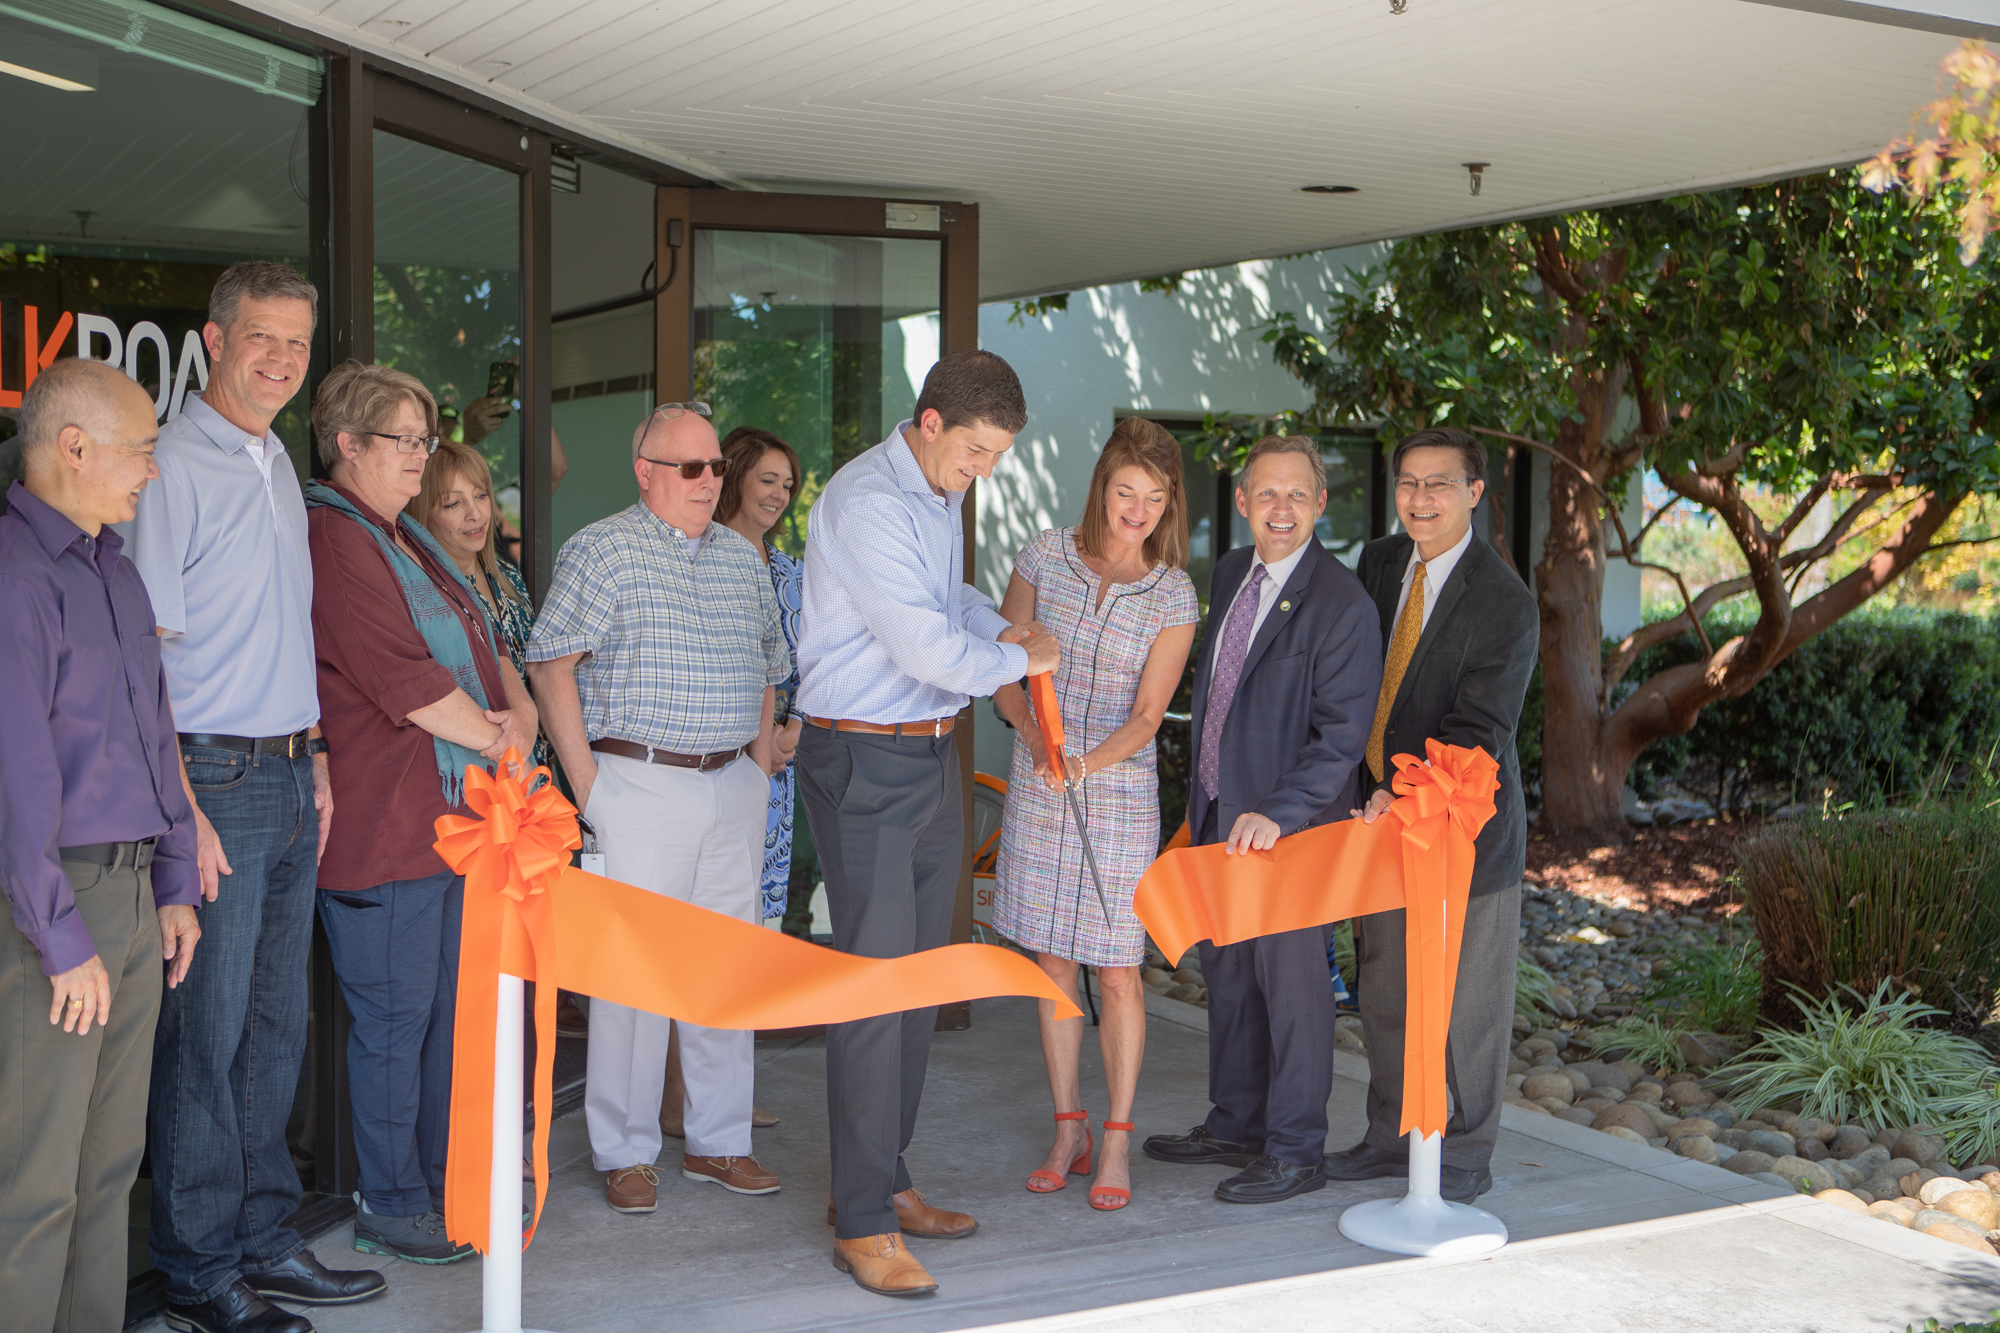 Ribbon Cutting - Atlas Studios captures once in a lifetime events for our local partners.